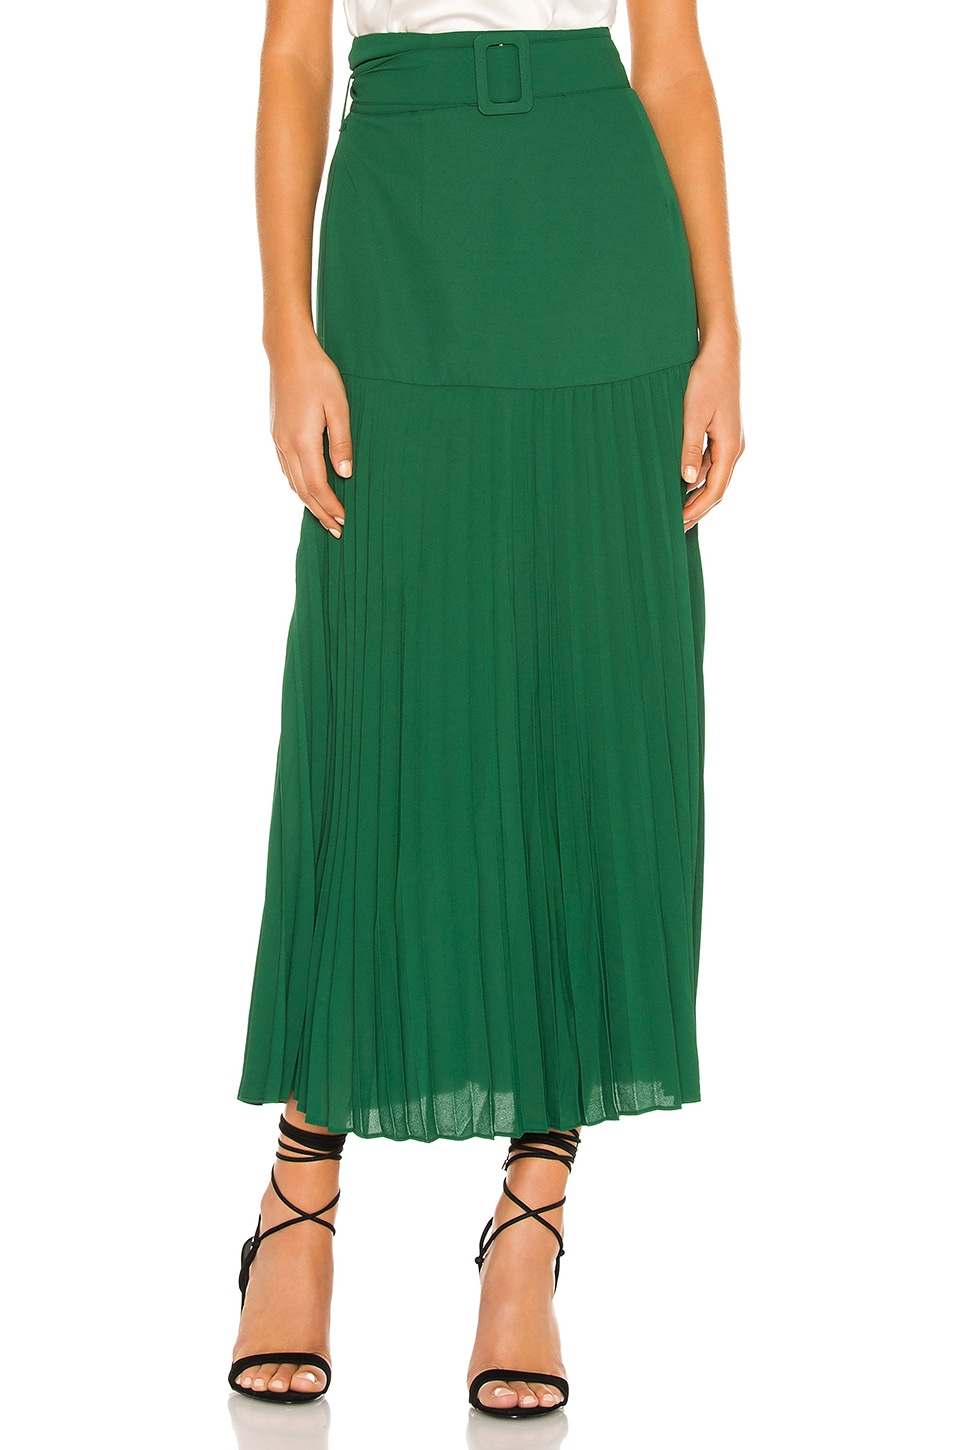 Bardot Buckle Pleated Skirt in Dark Green